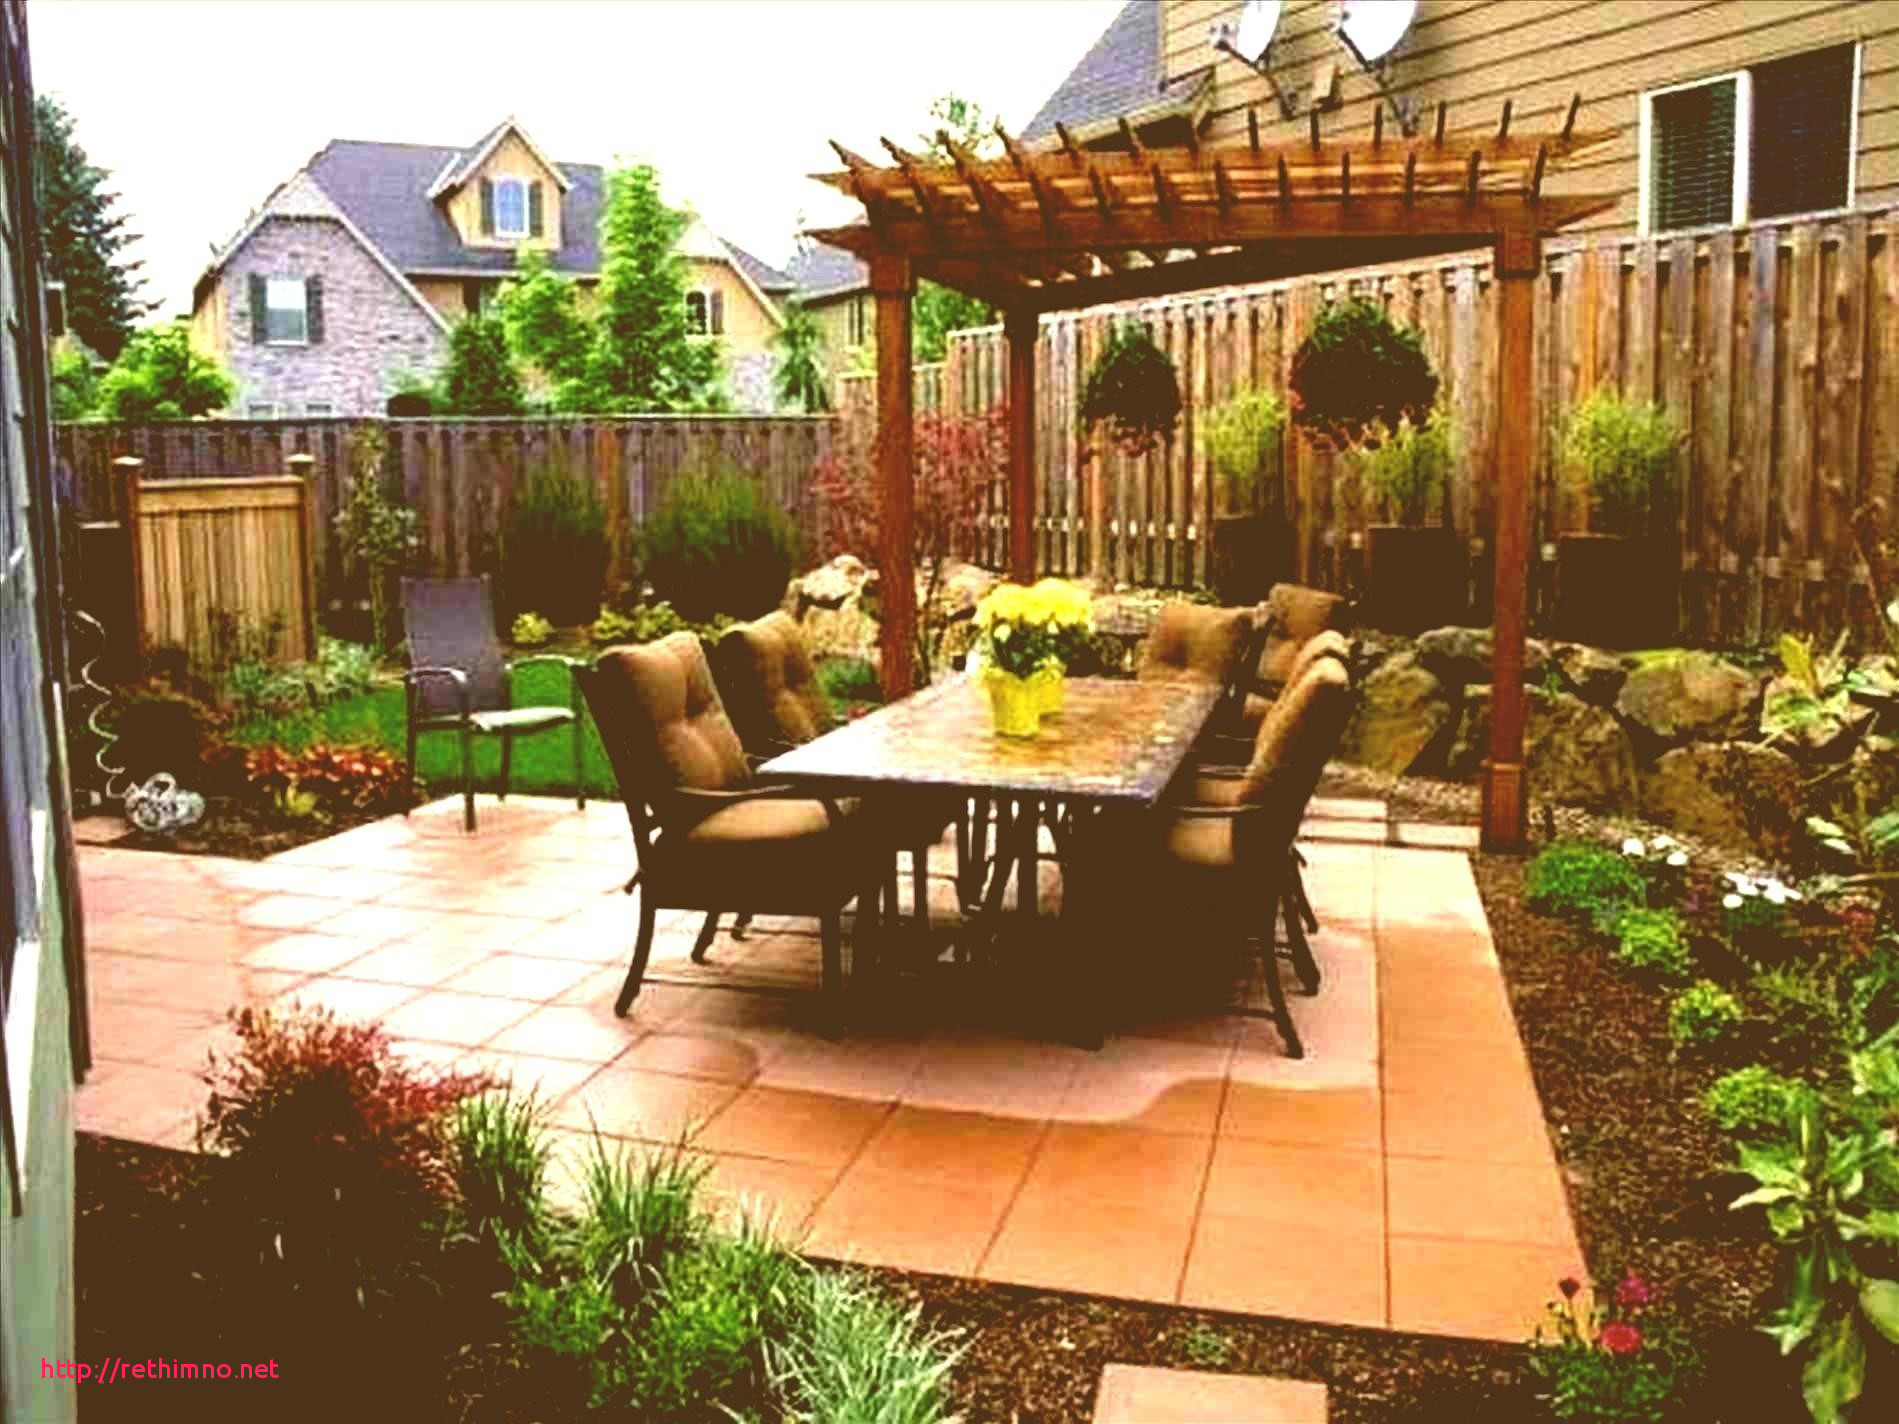 Unique Backyard Ideas Cheap Budget Rethimno throughout Landscaping Backyard Ideas Inexpensive